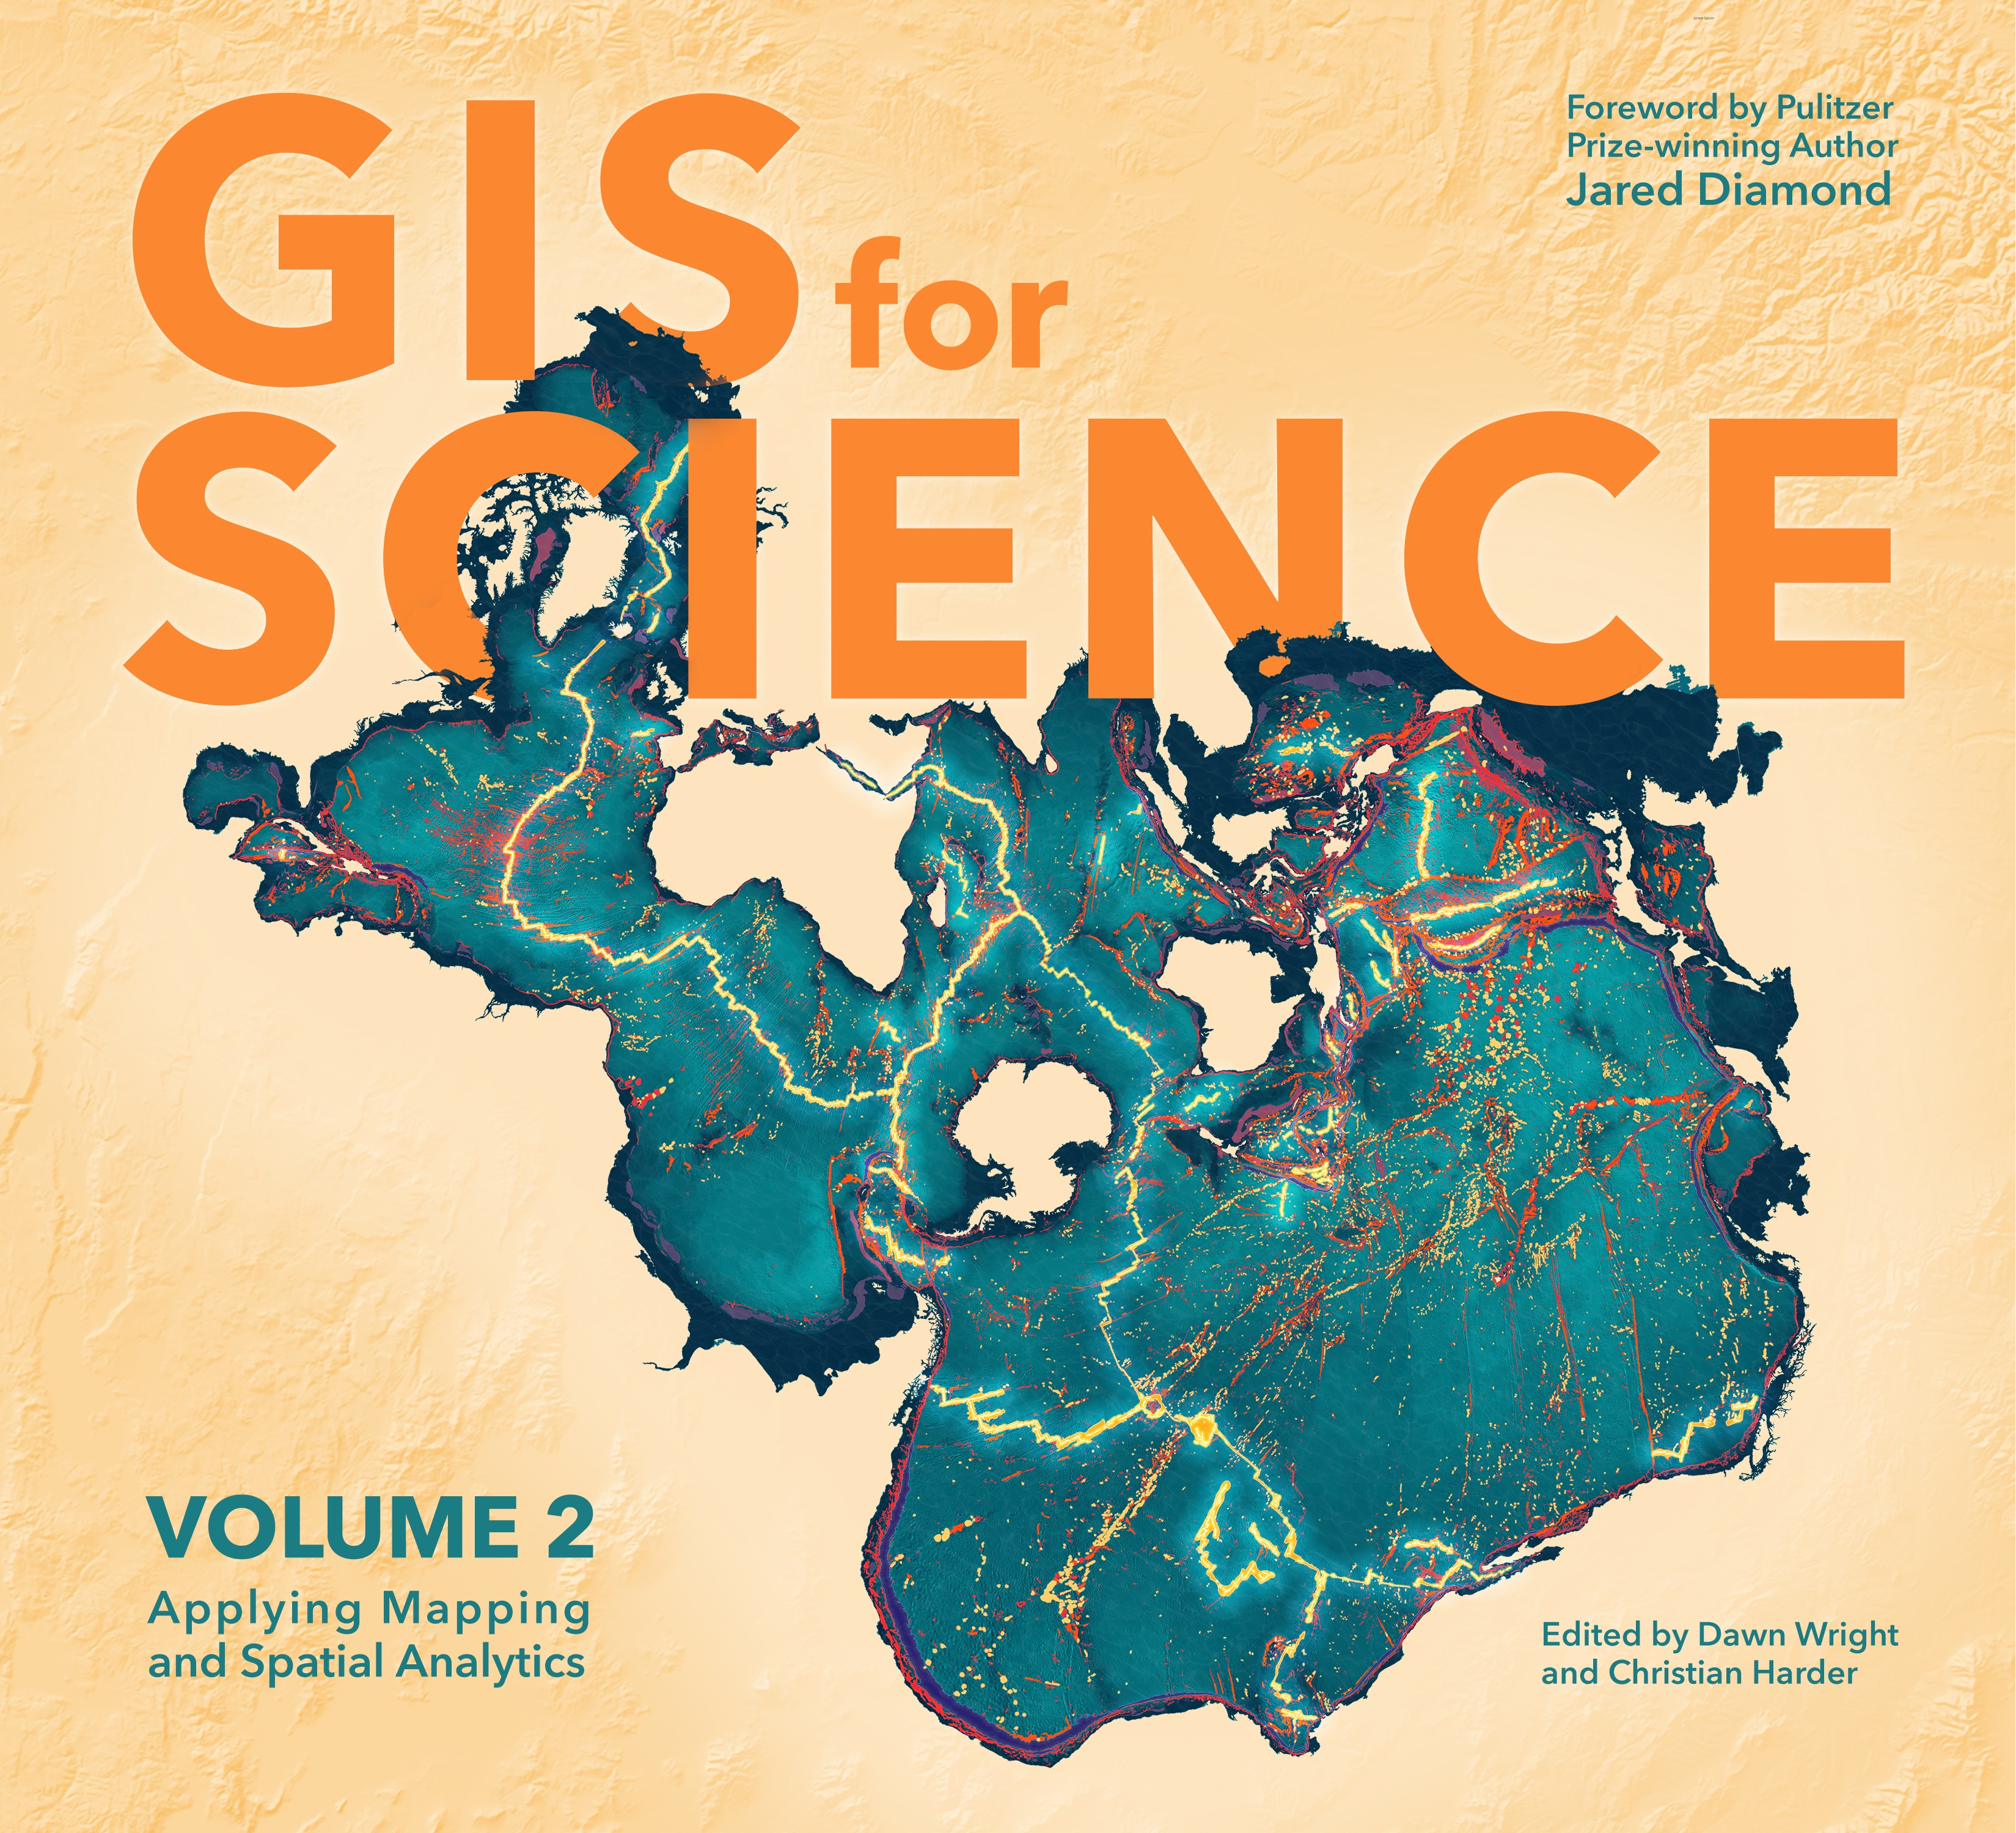 GIS for Science volume 2